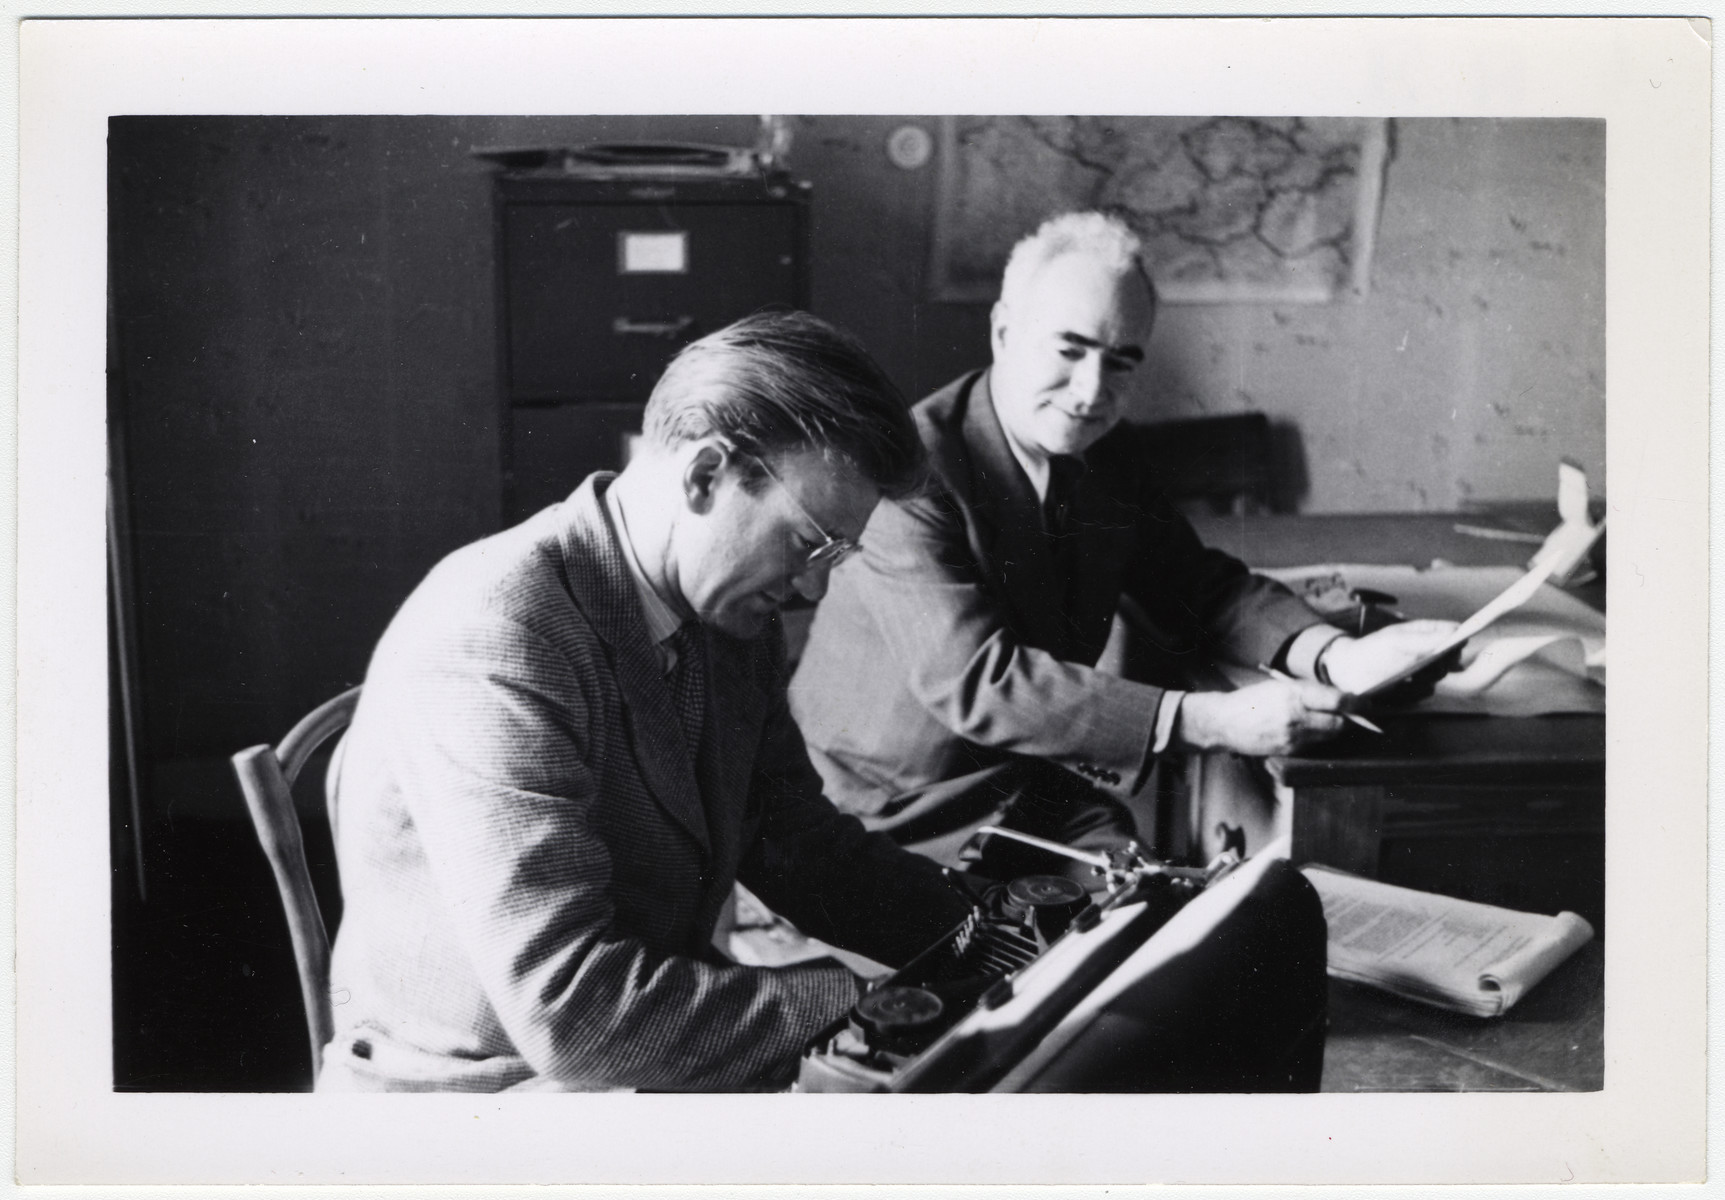 Maurice Levitt (right), a member of the Frankfurt Jewish GI Council, and his secretary work in their office in Bad Nauheim.